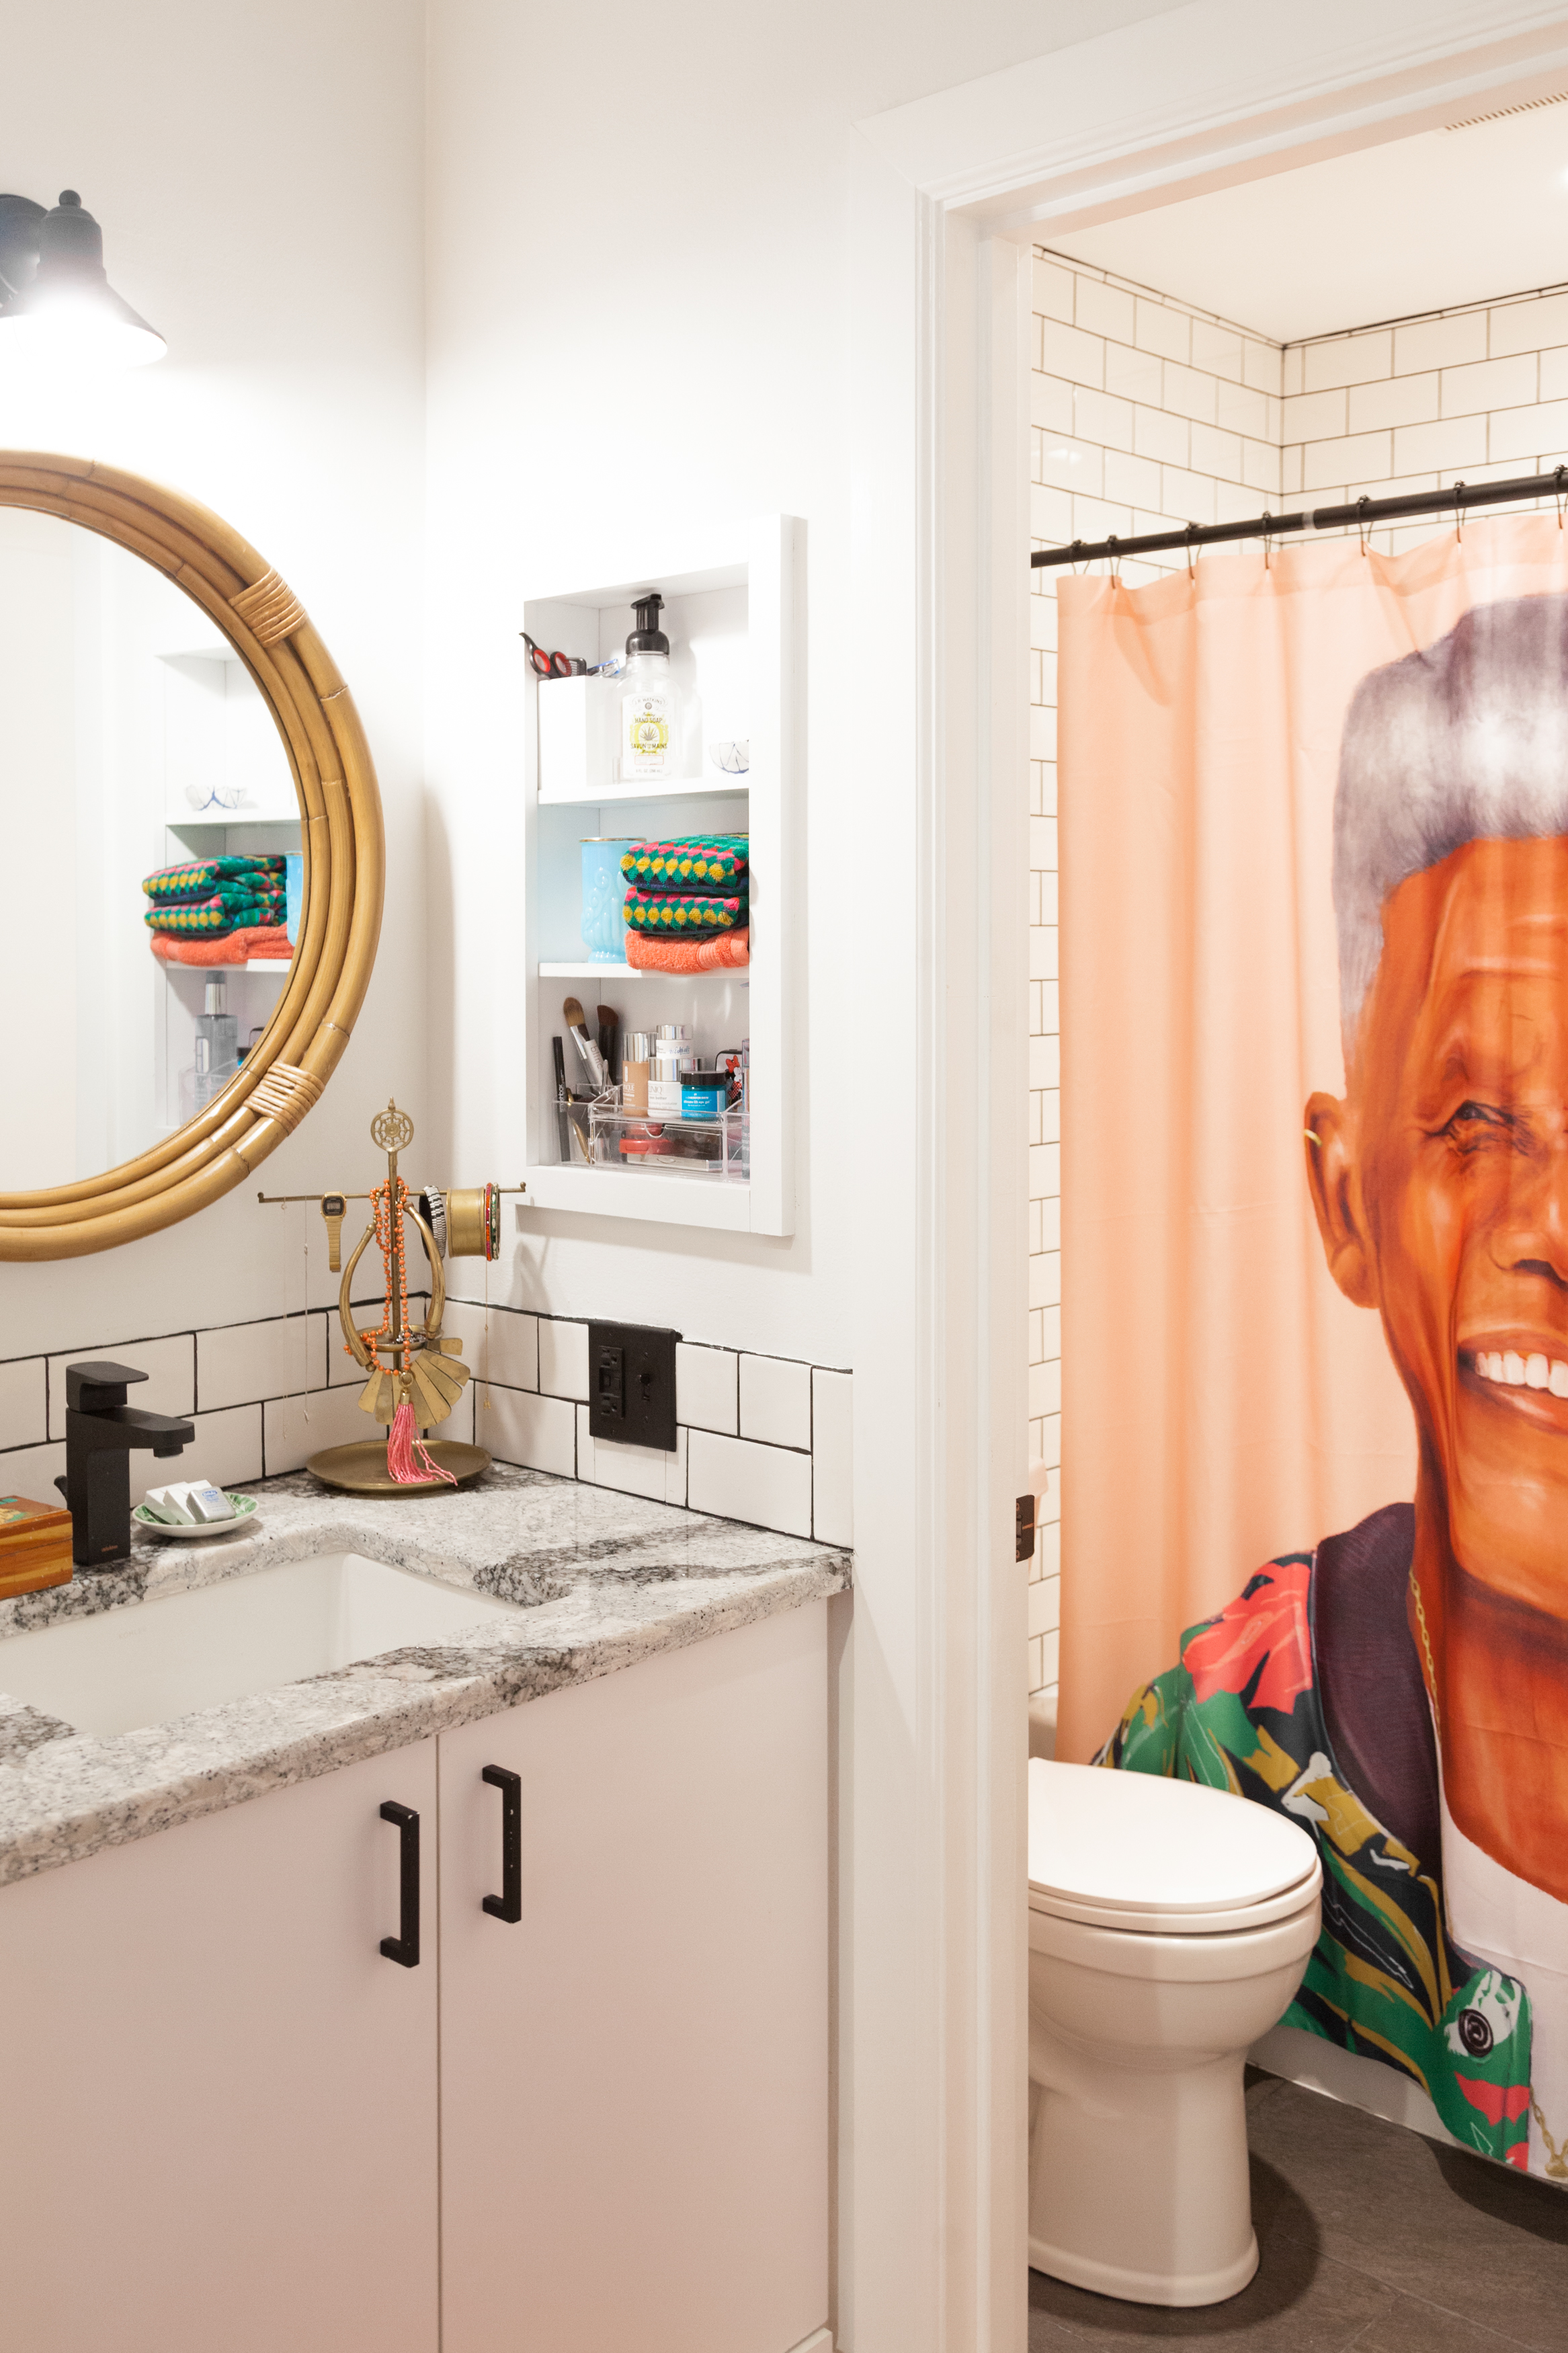 Shower Curtains Vs Doors Which Is Better